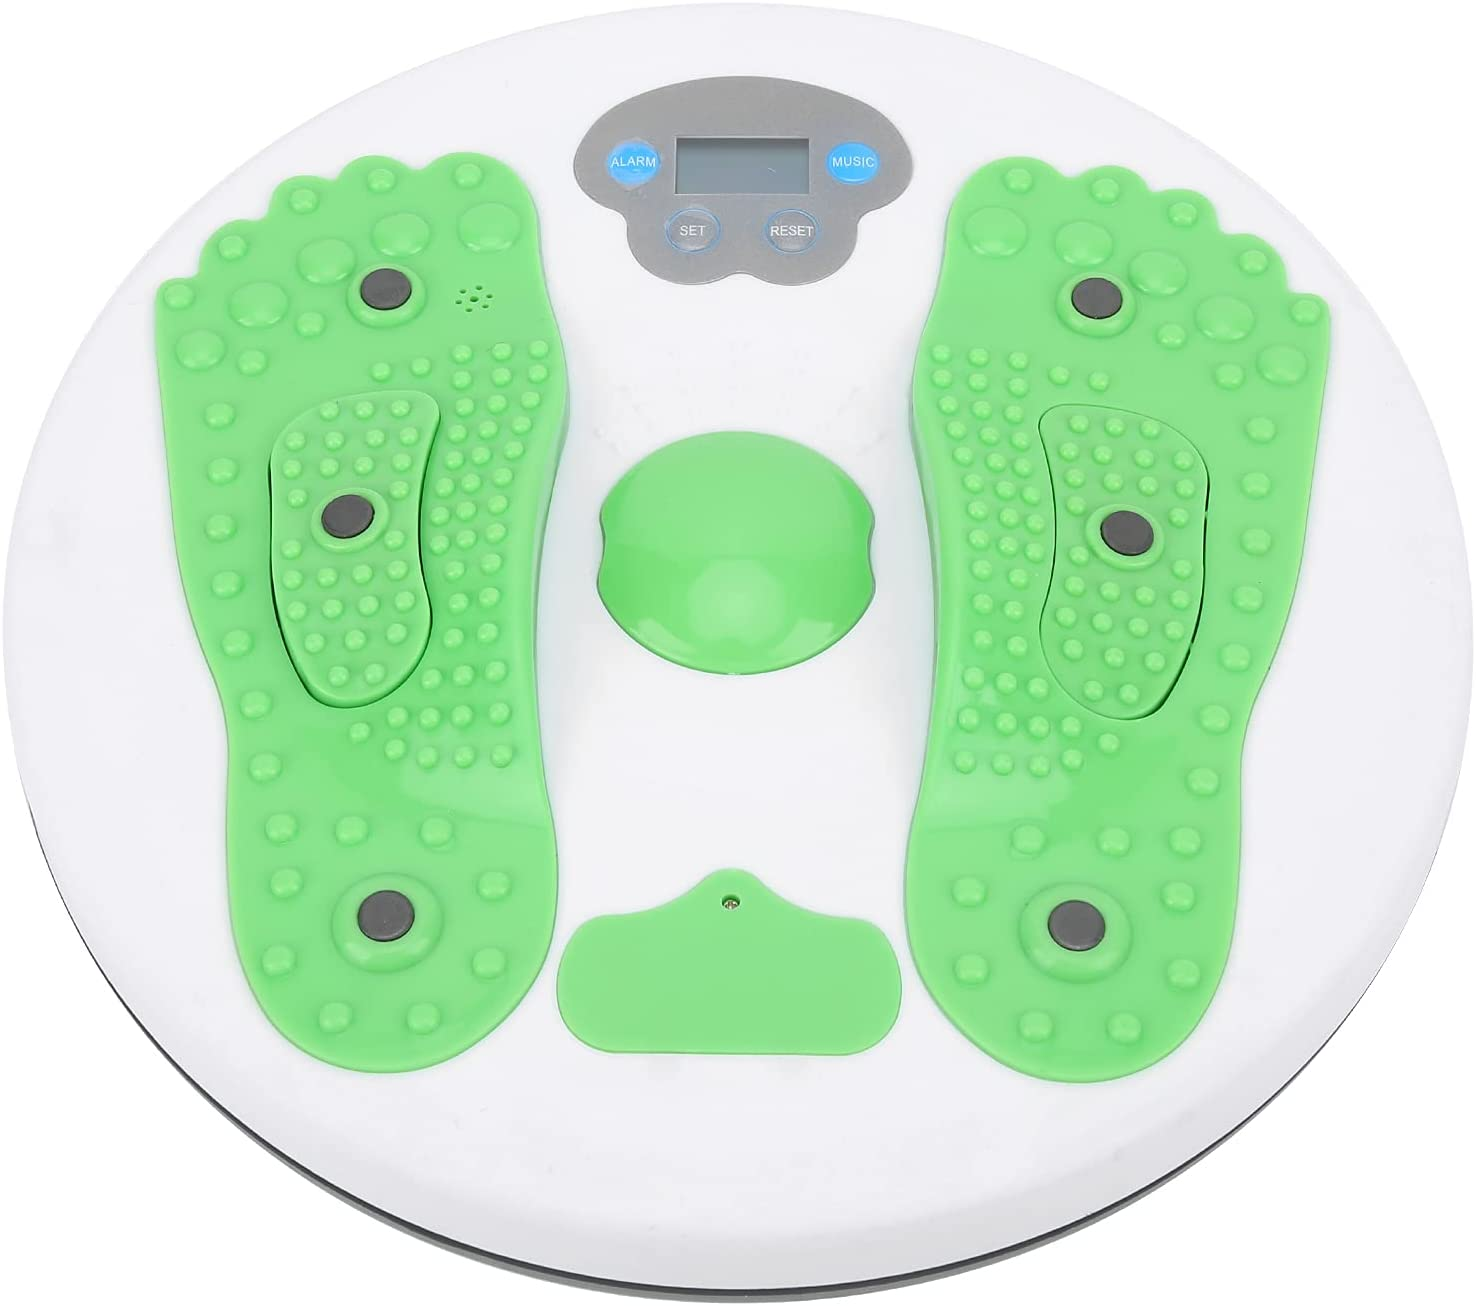 01 Twisting Houston Mall Waist Disc House Green Calorie Plate 35% OFF